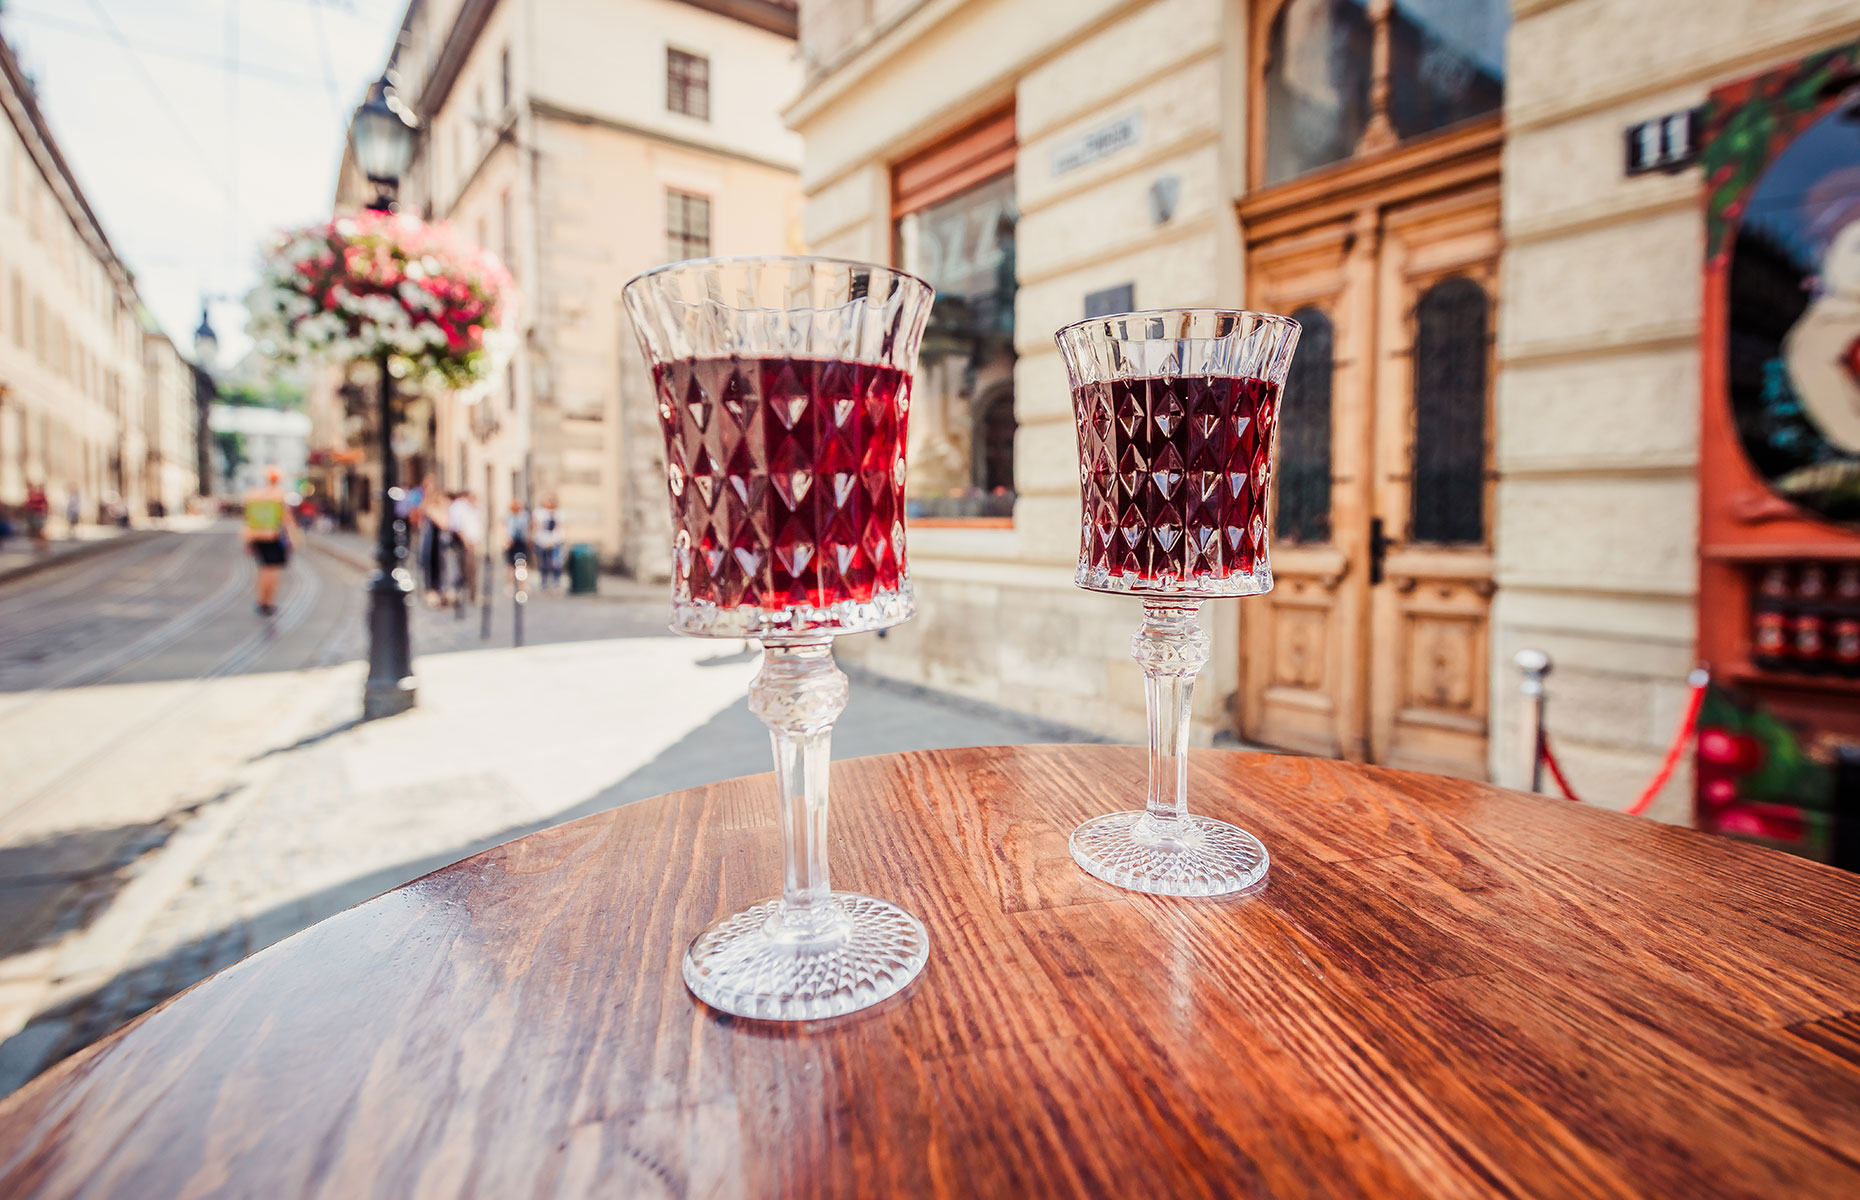 Cherry wine is served in traditional glasses in Lviv